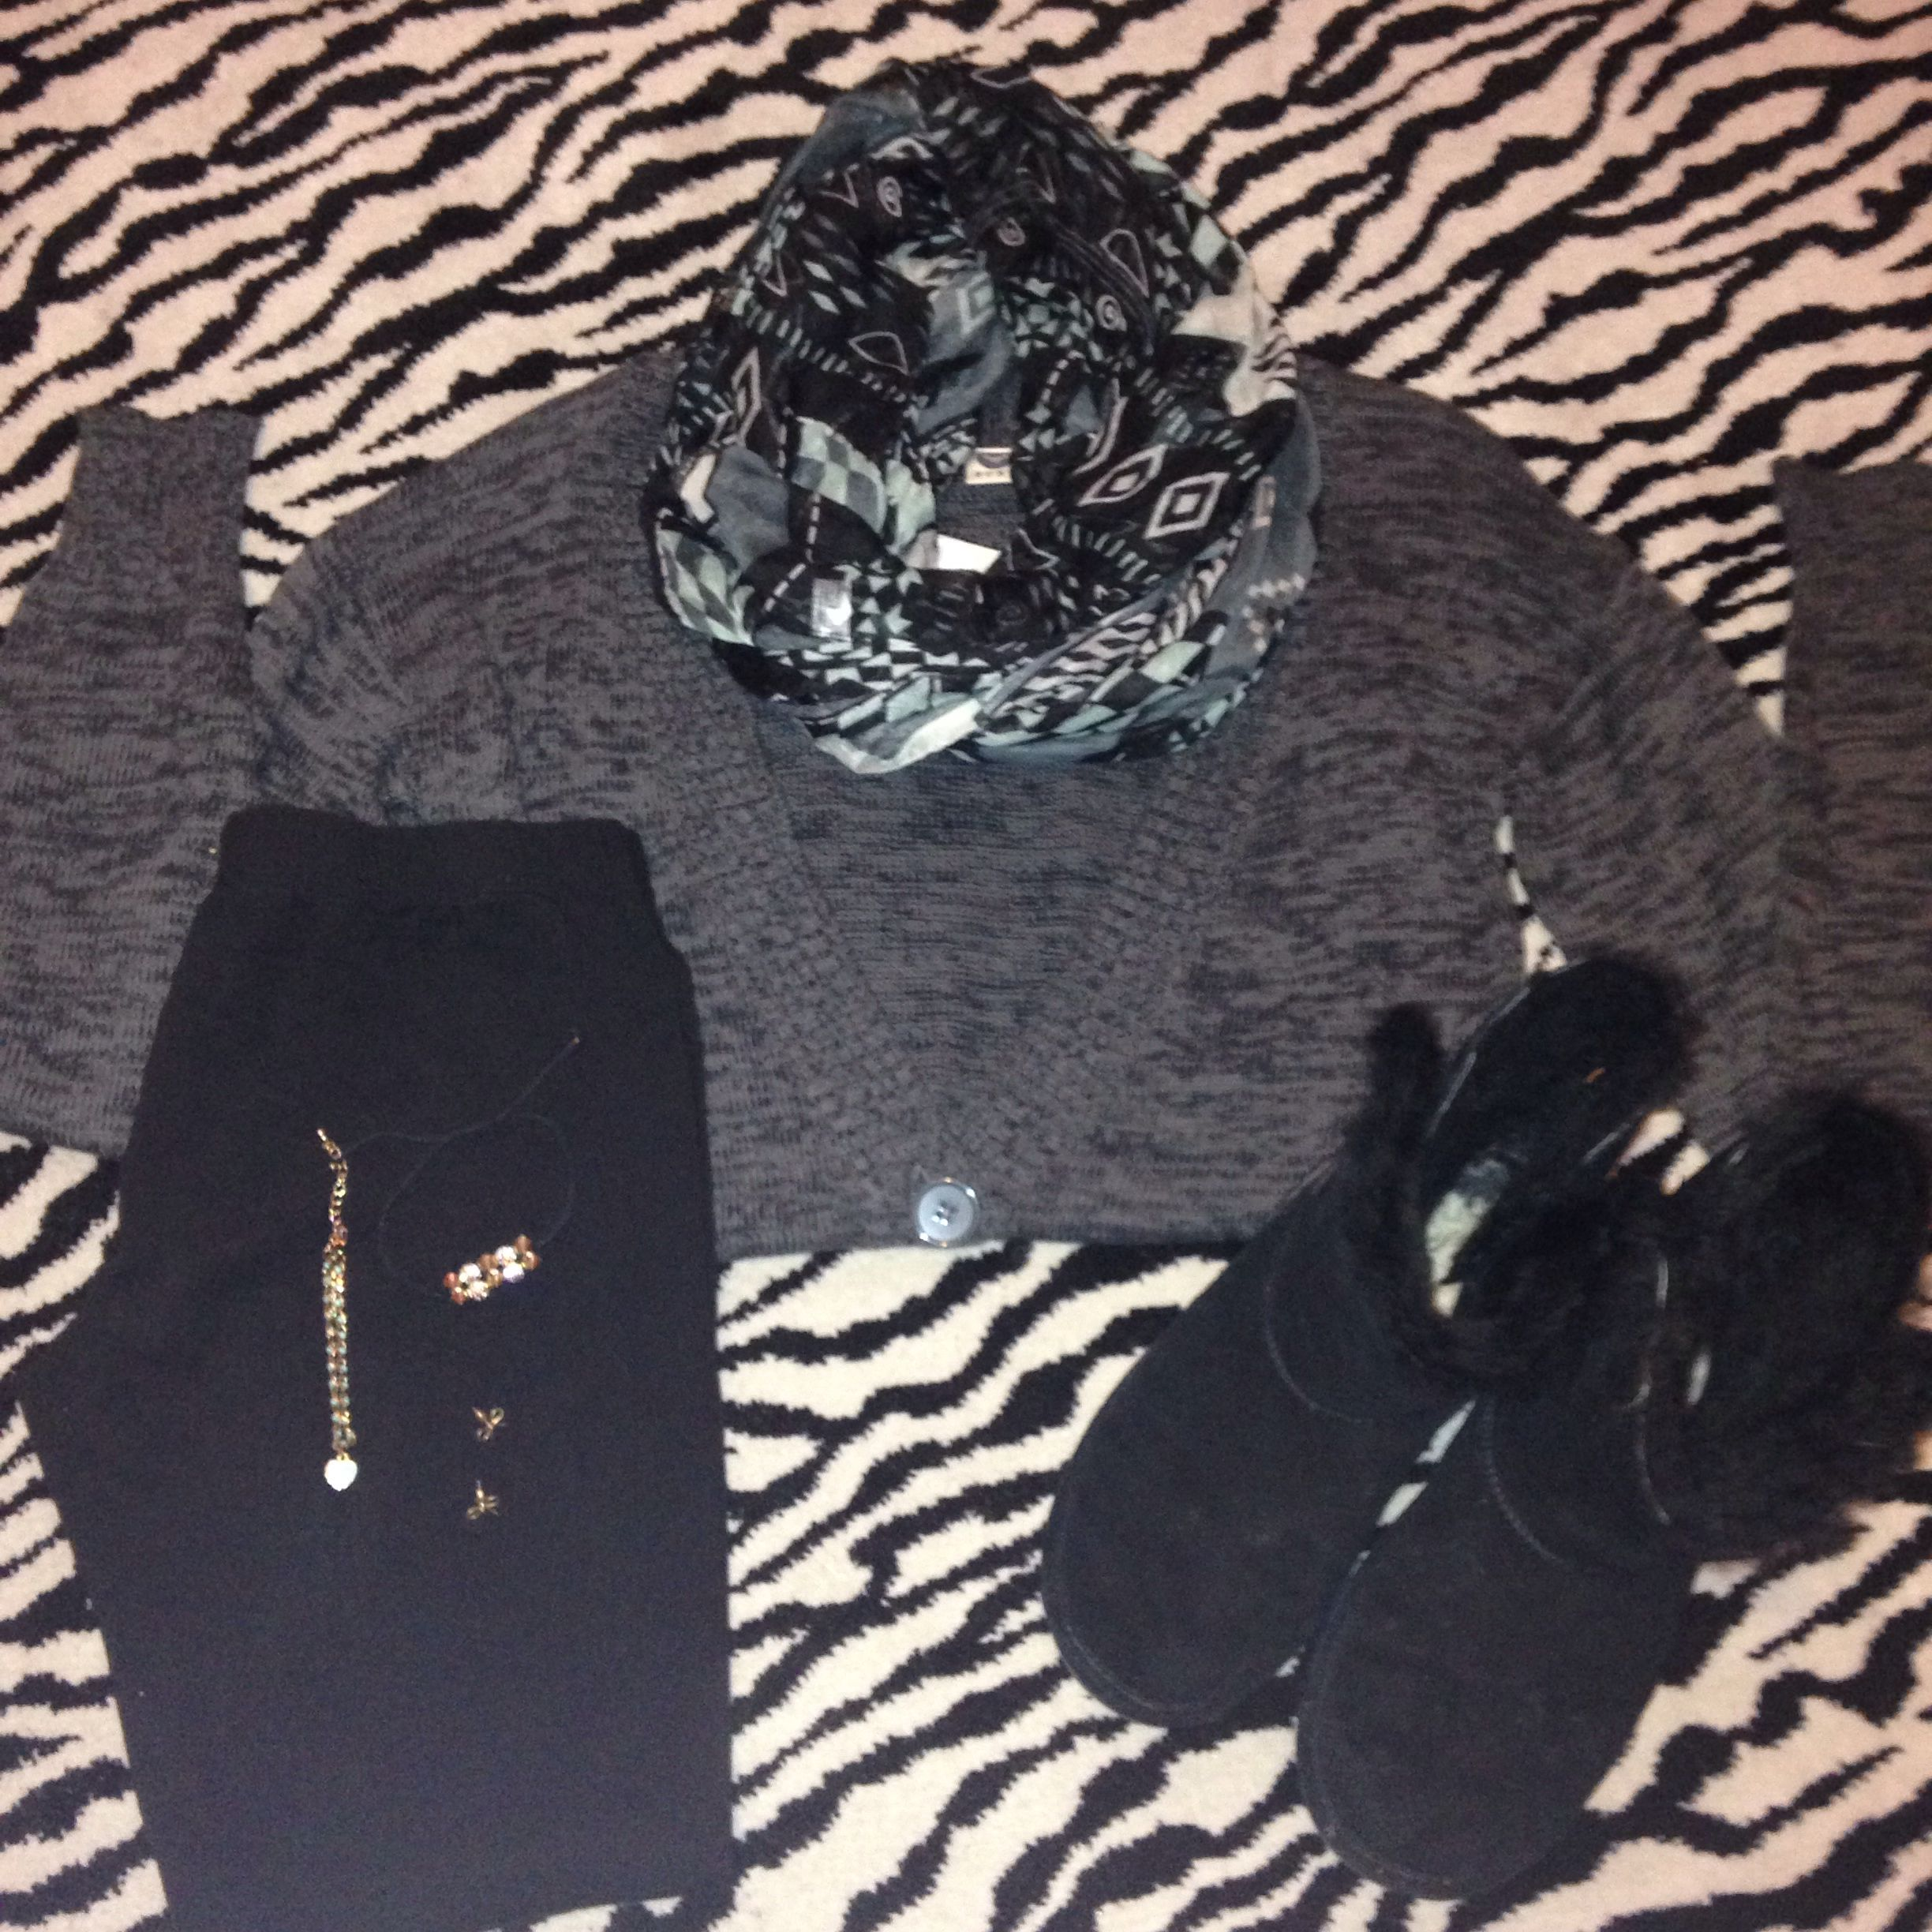 Shirt: Pacsun  Scarf: pacsun Leggings: walmart Boots: anywhere that sells bearpaws jewlery: unknown